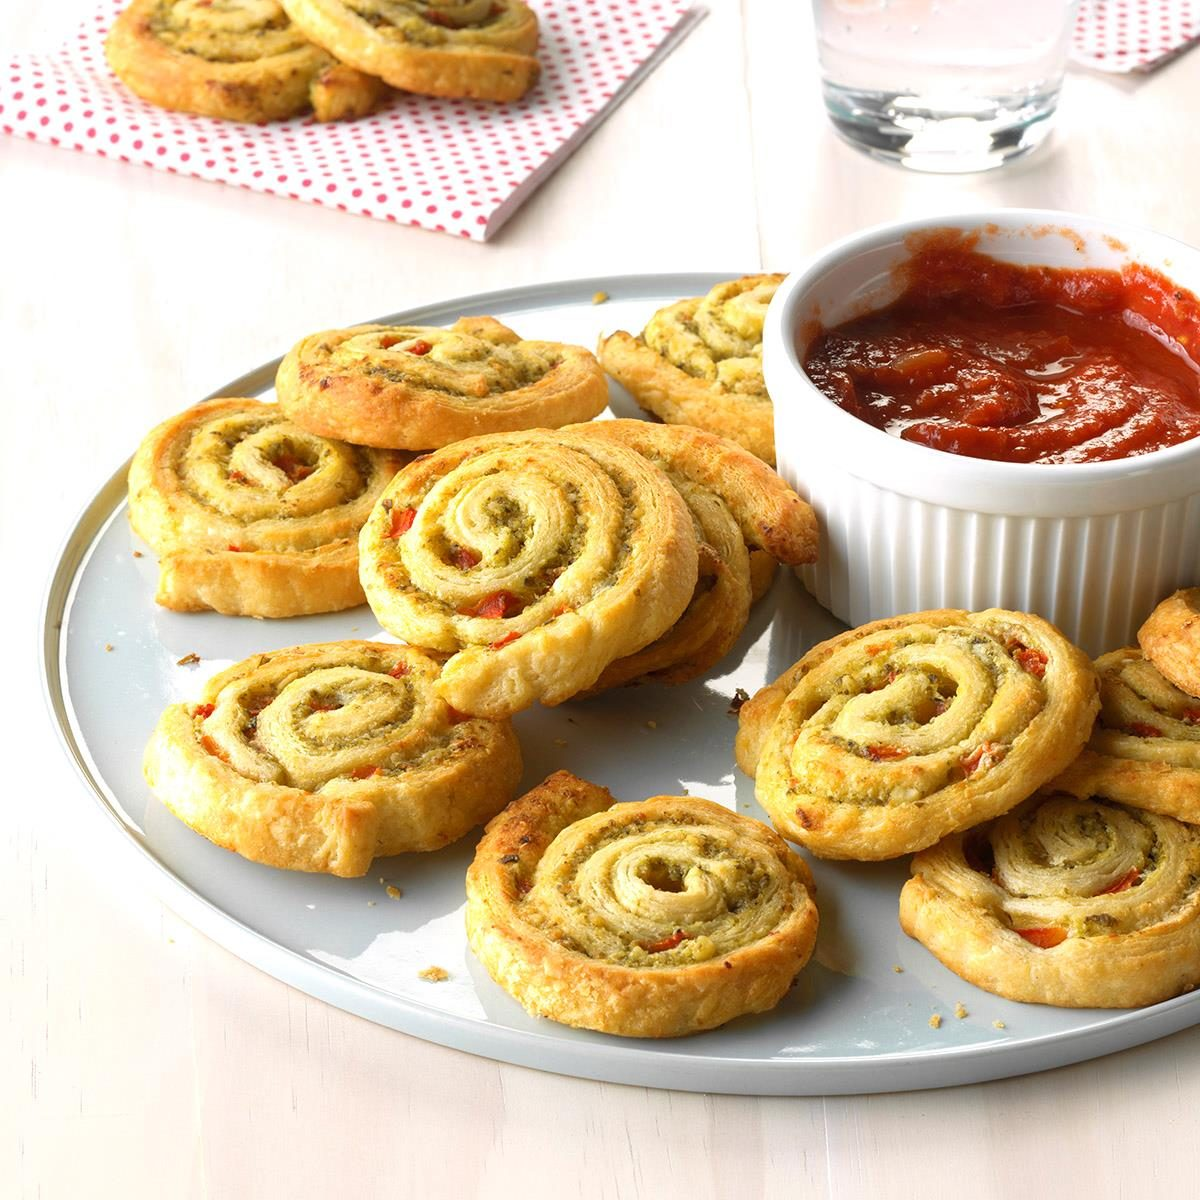 Easy Italian Desserts For A Crowd: Party Pesto Pinwheels Recipe